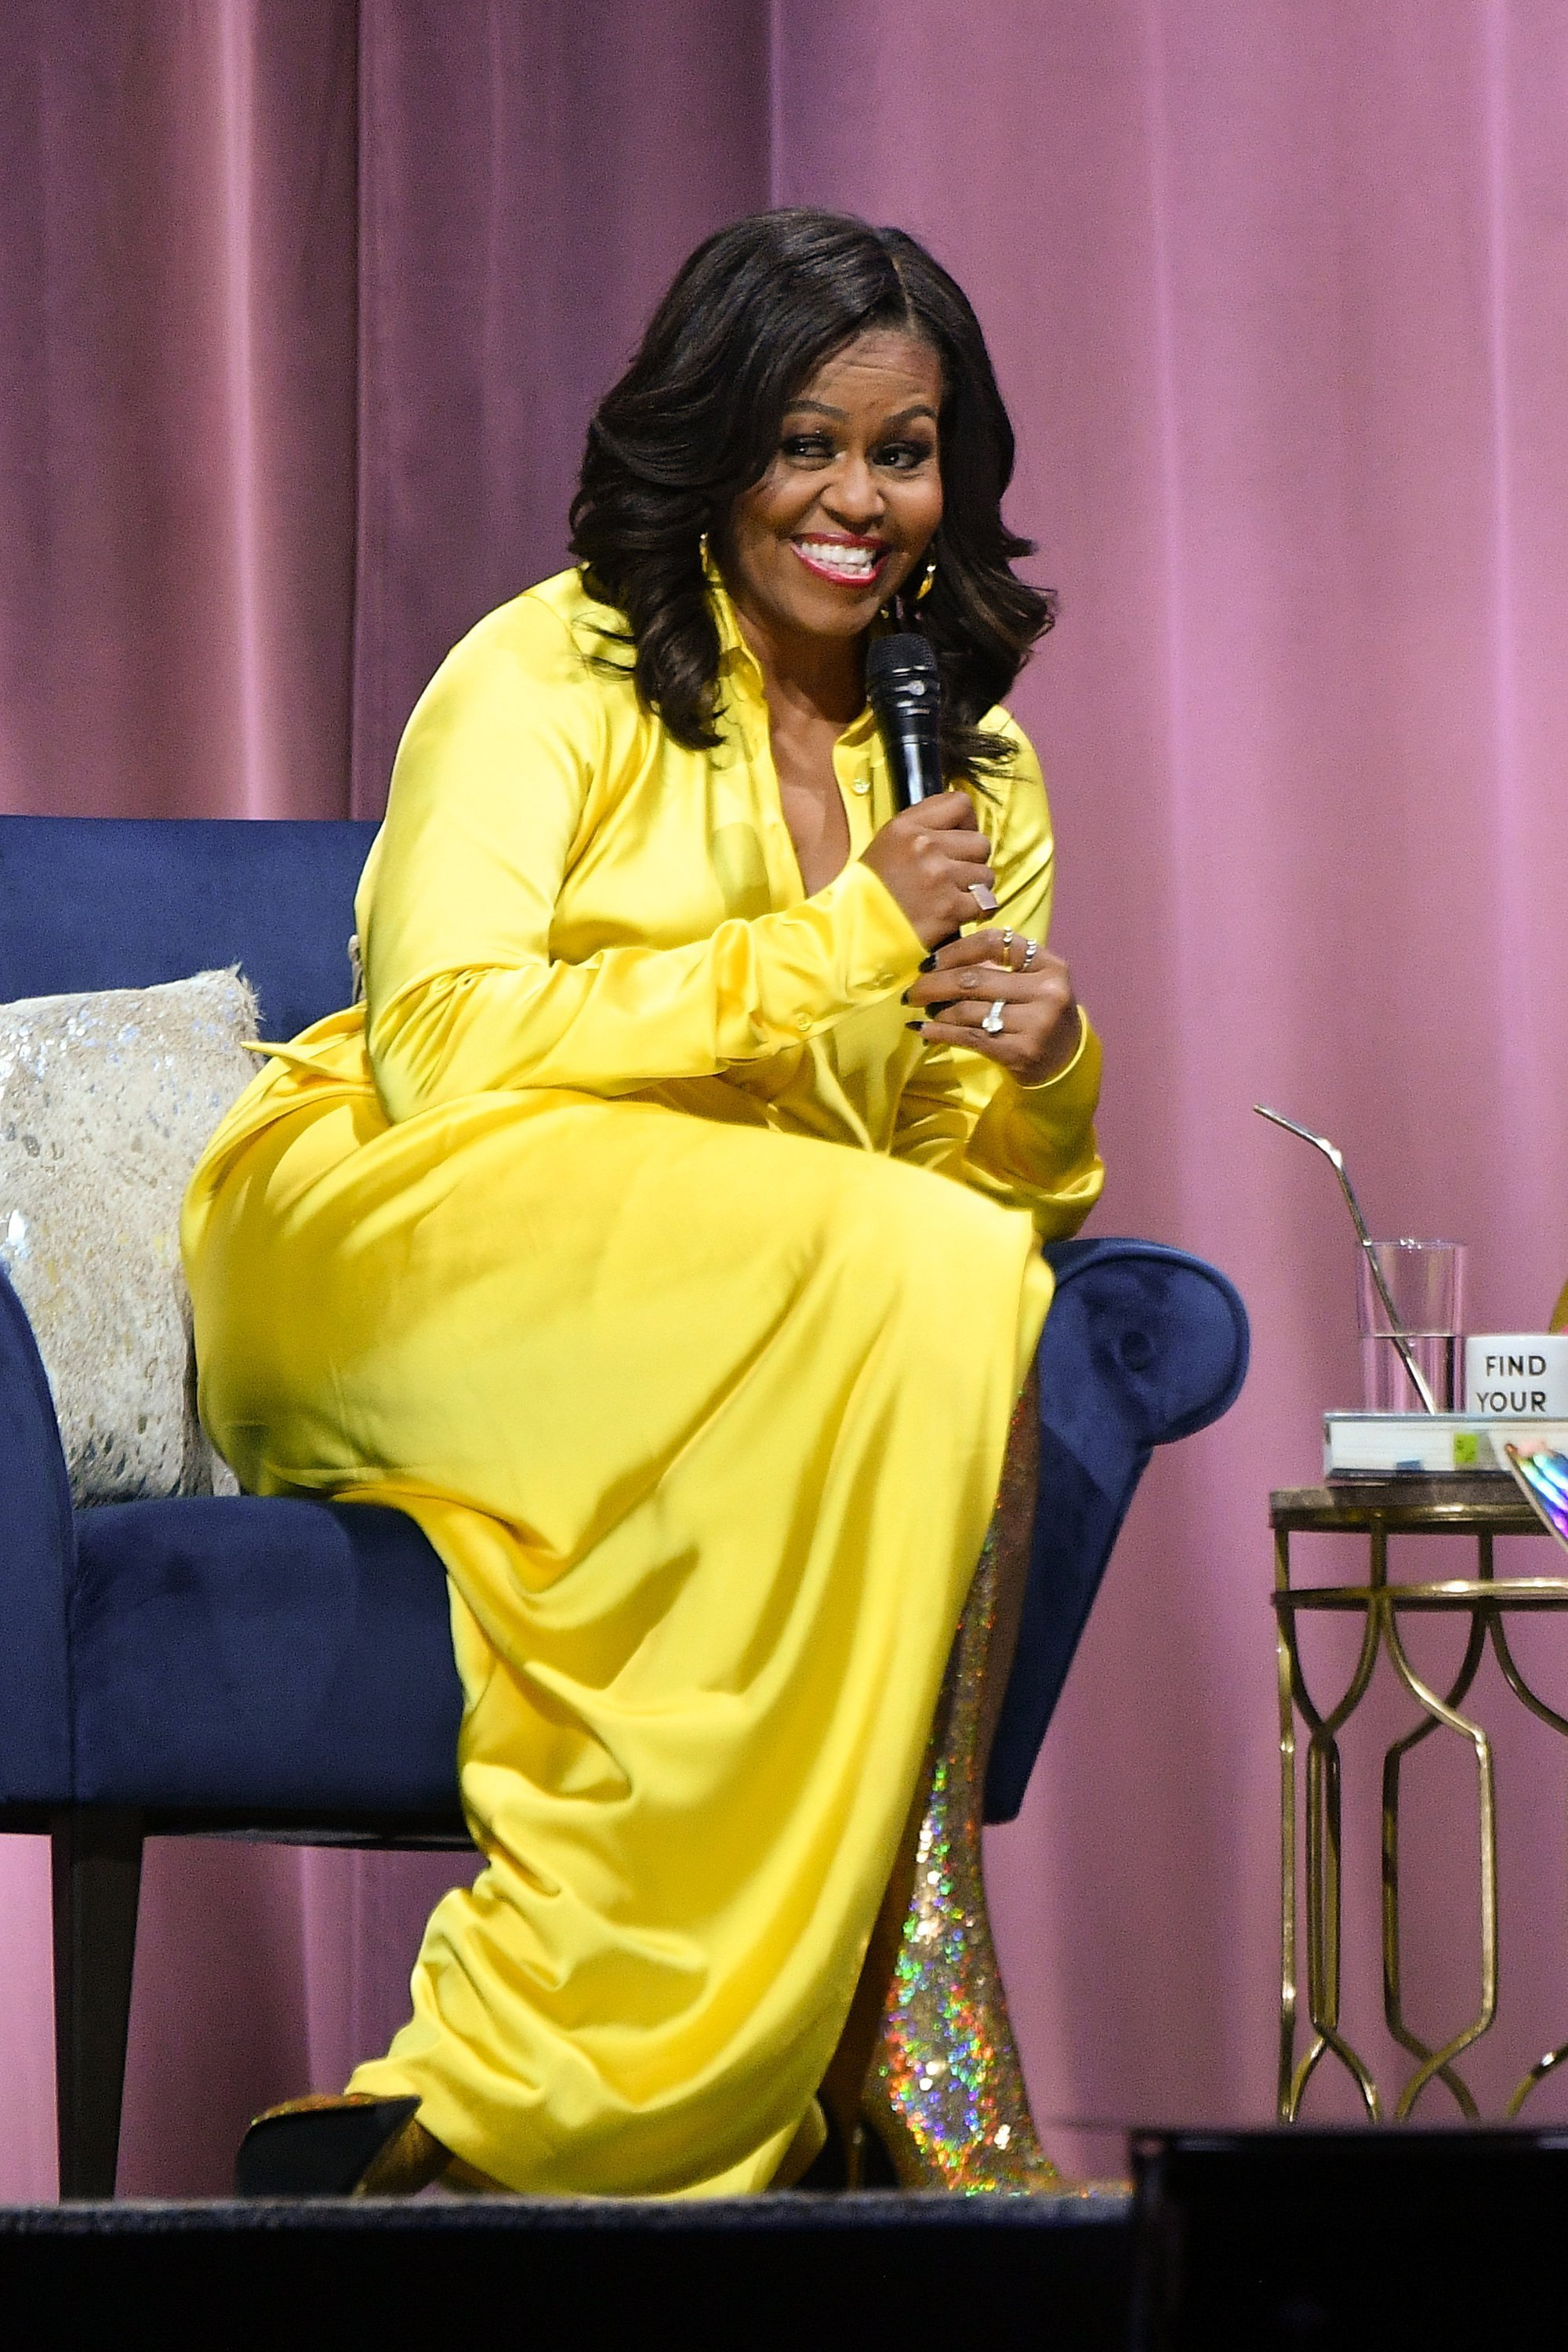 Michelle Obama discussing her book 'Becoming' at Barclays Center | Photo: Getty Images